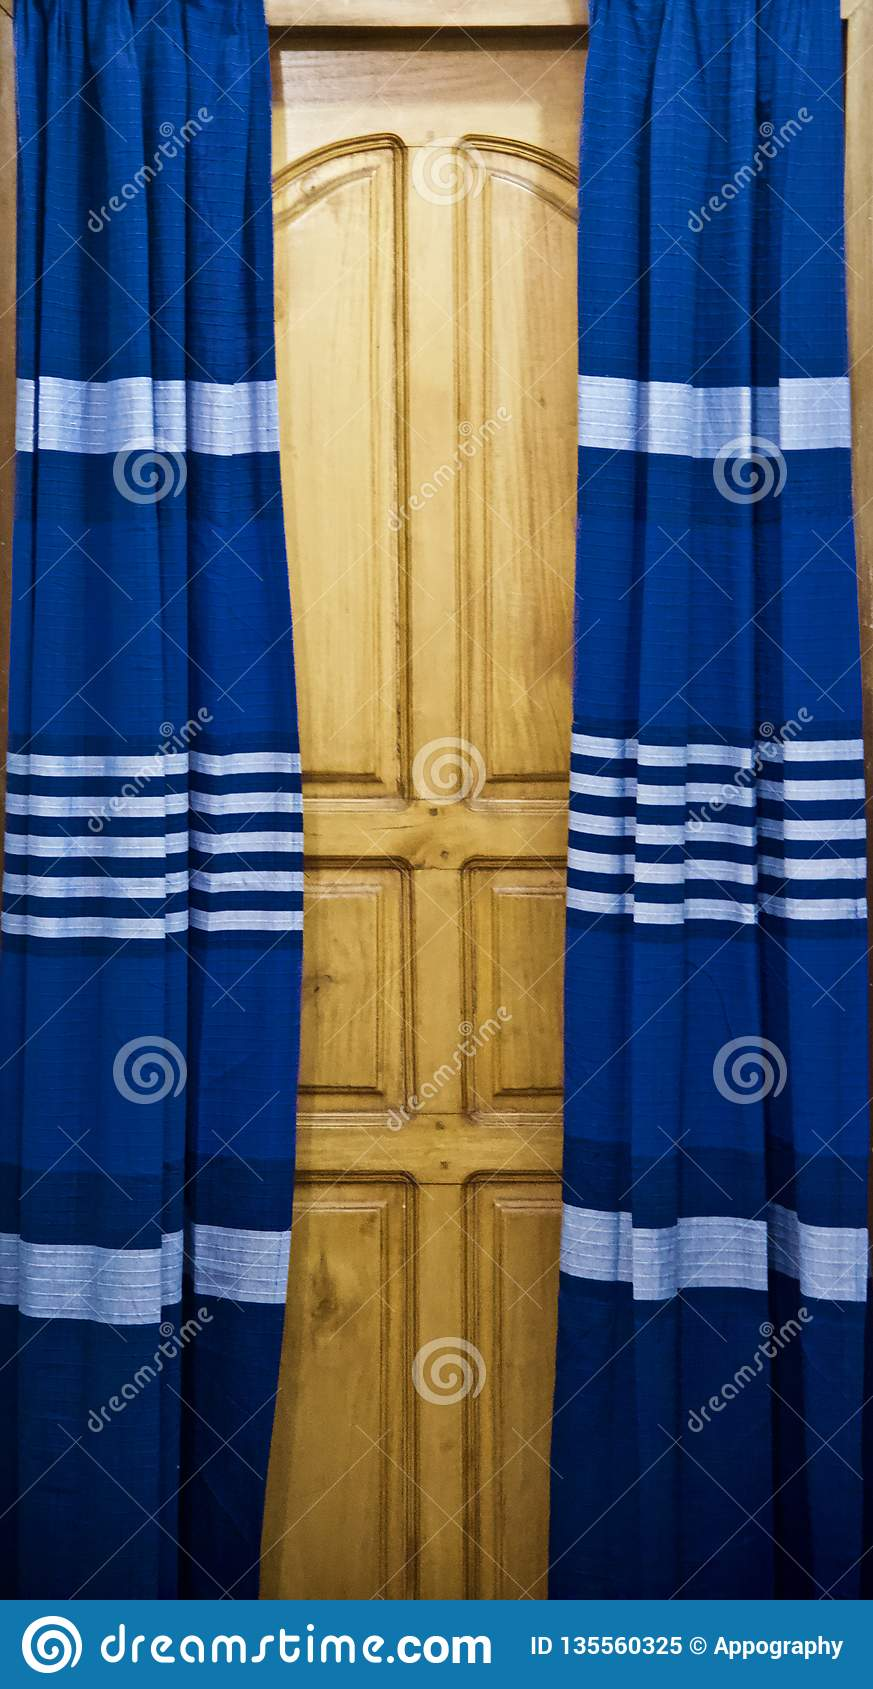 Blueish curtain clothes of a wooden door